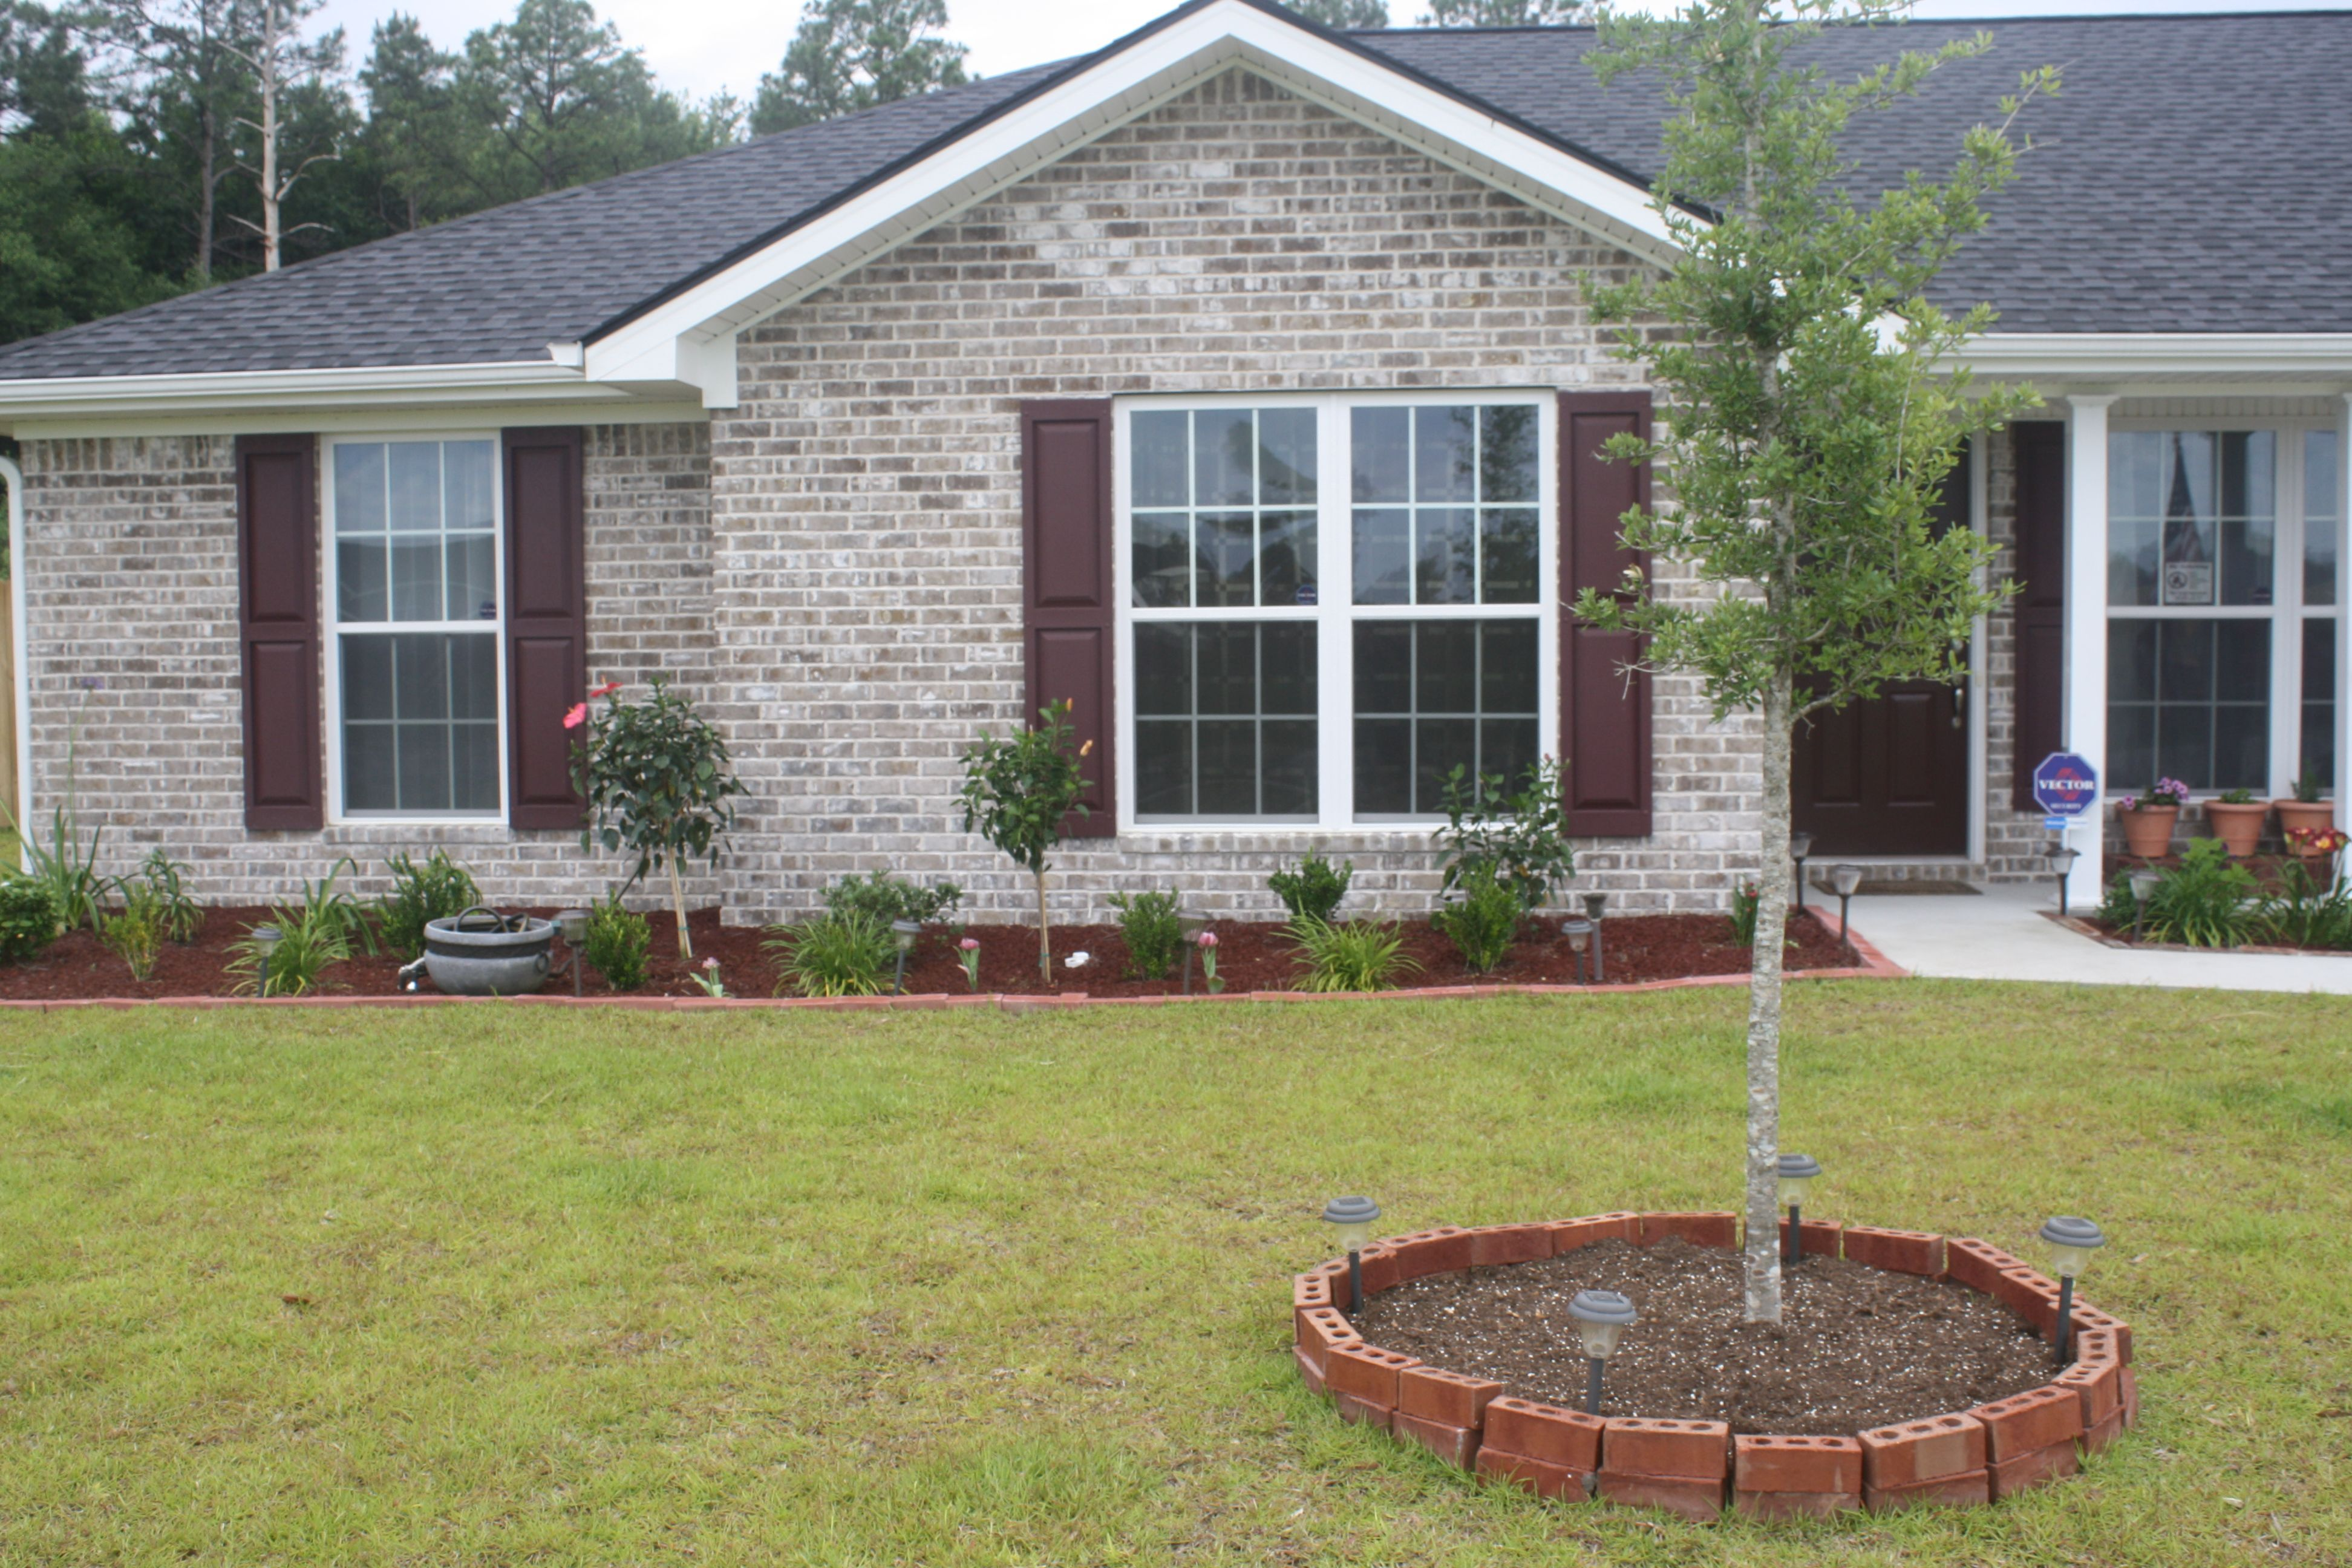 Border around flower beds and tree done with bricks from